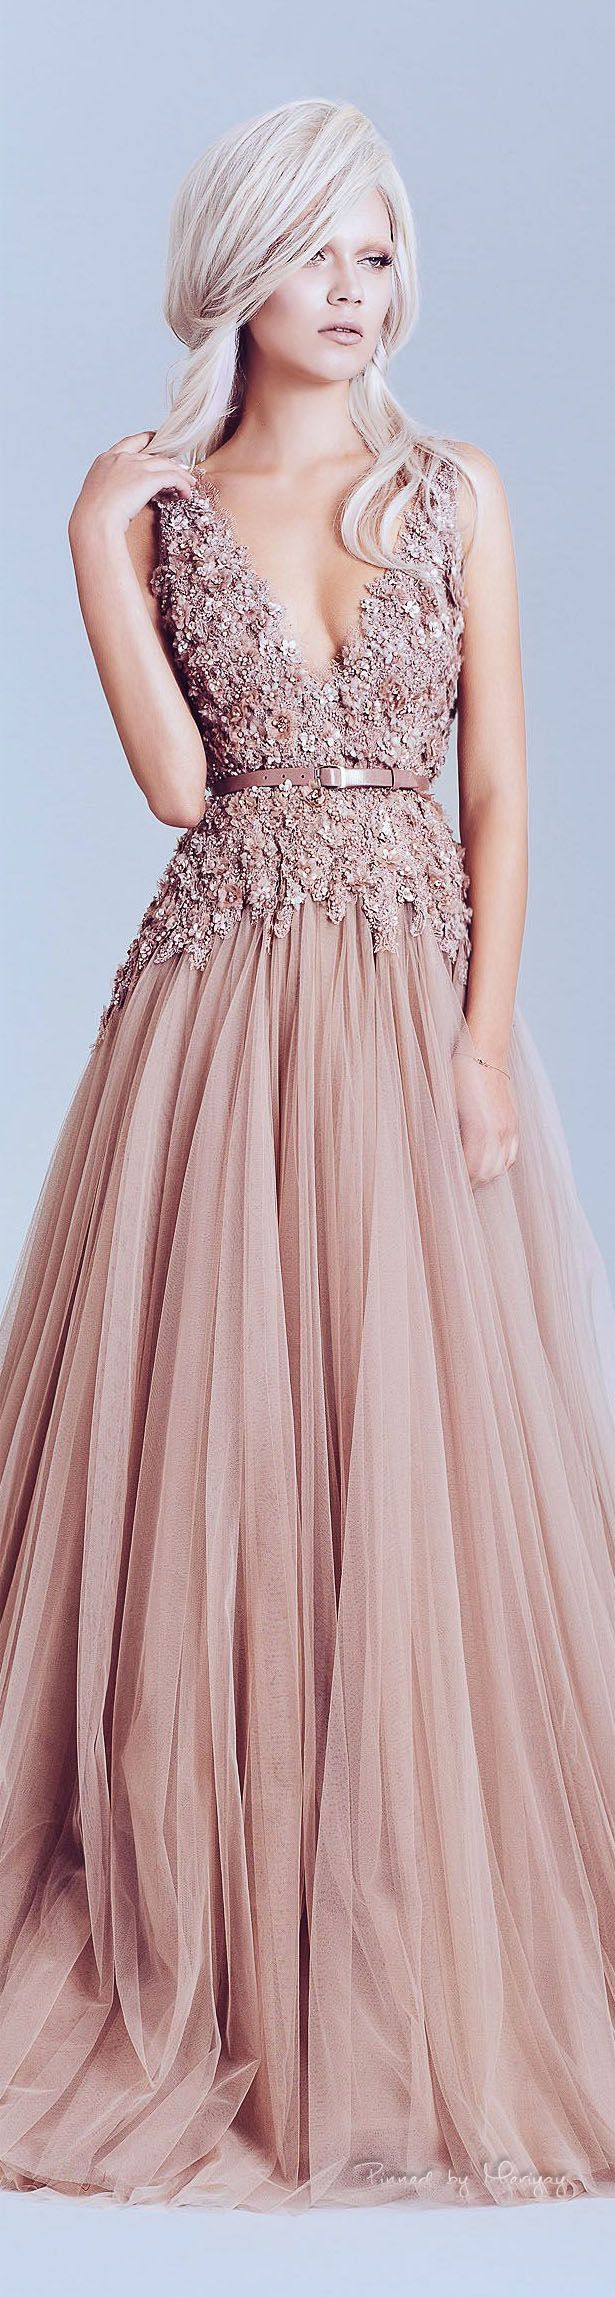 Best 25 sparkle bridesmaid dresses ideas on pinterest gold my bridesmaid dresses custom modified plunging v neck to be more conservative for mass alfazairy spring summer bridesmaid dresses sequin bridesmaid ombrellifo Choice Image